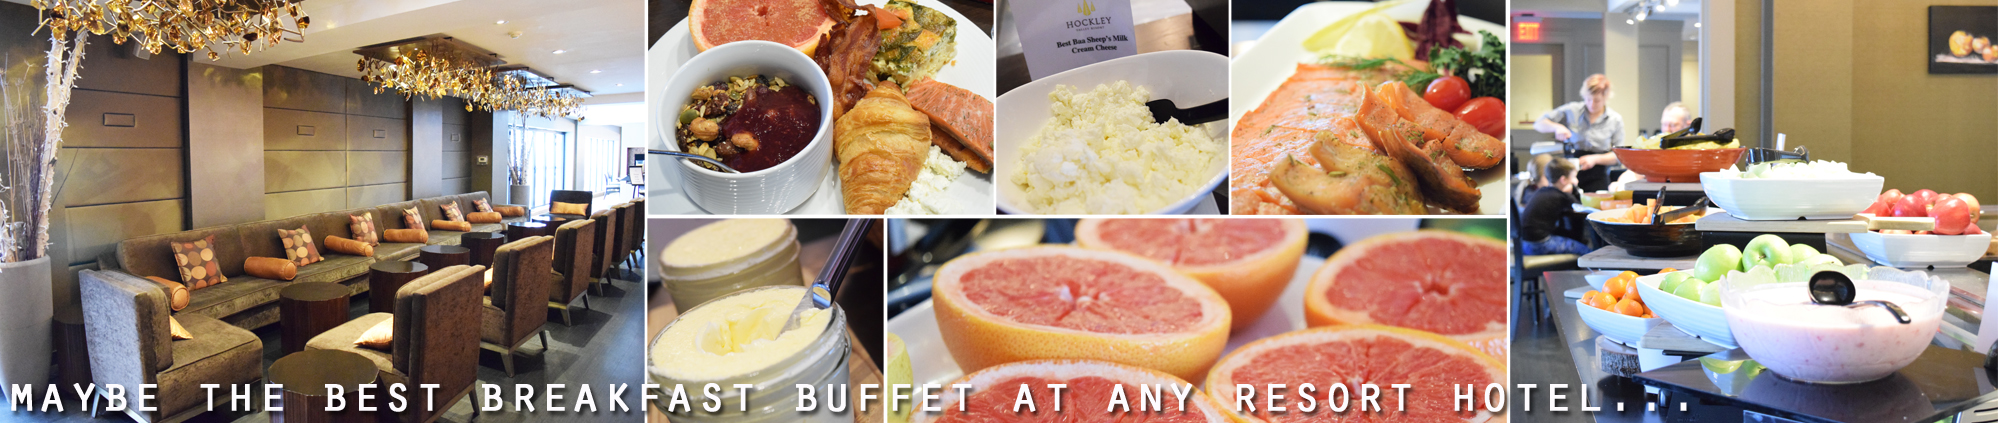 Hockley Valley Resort buffet breakfast